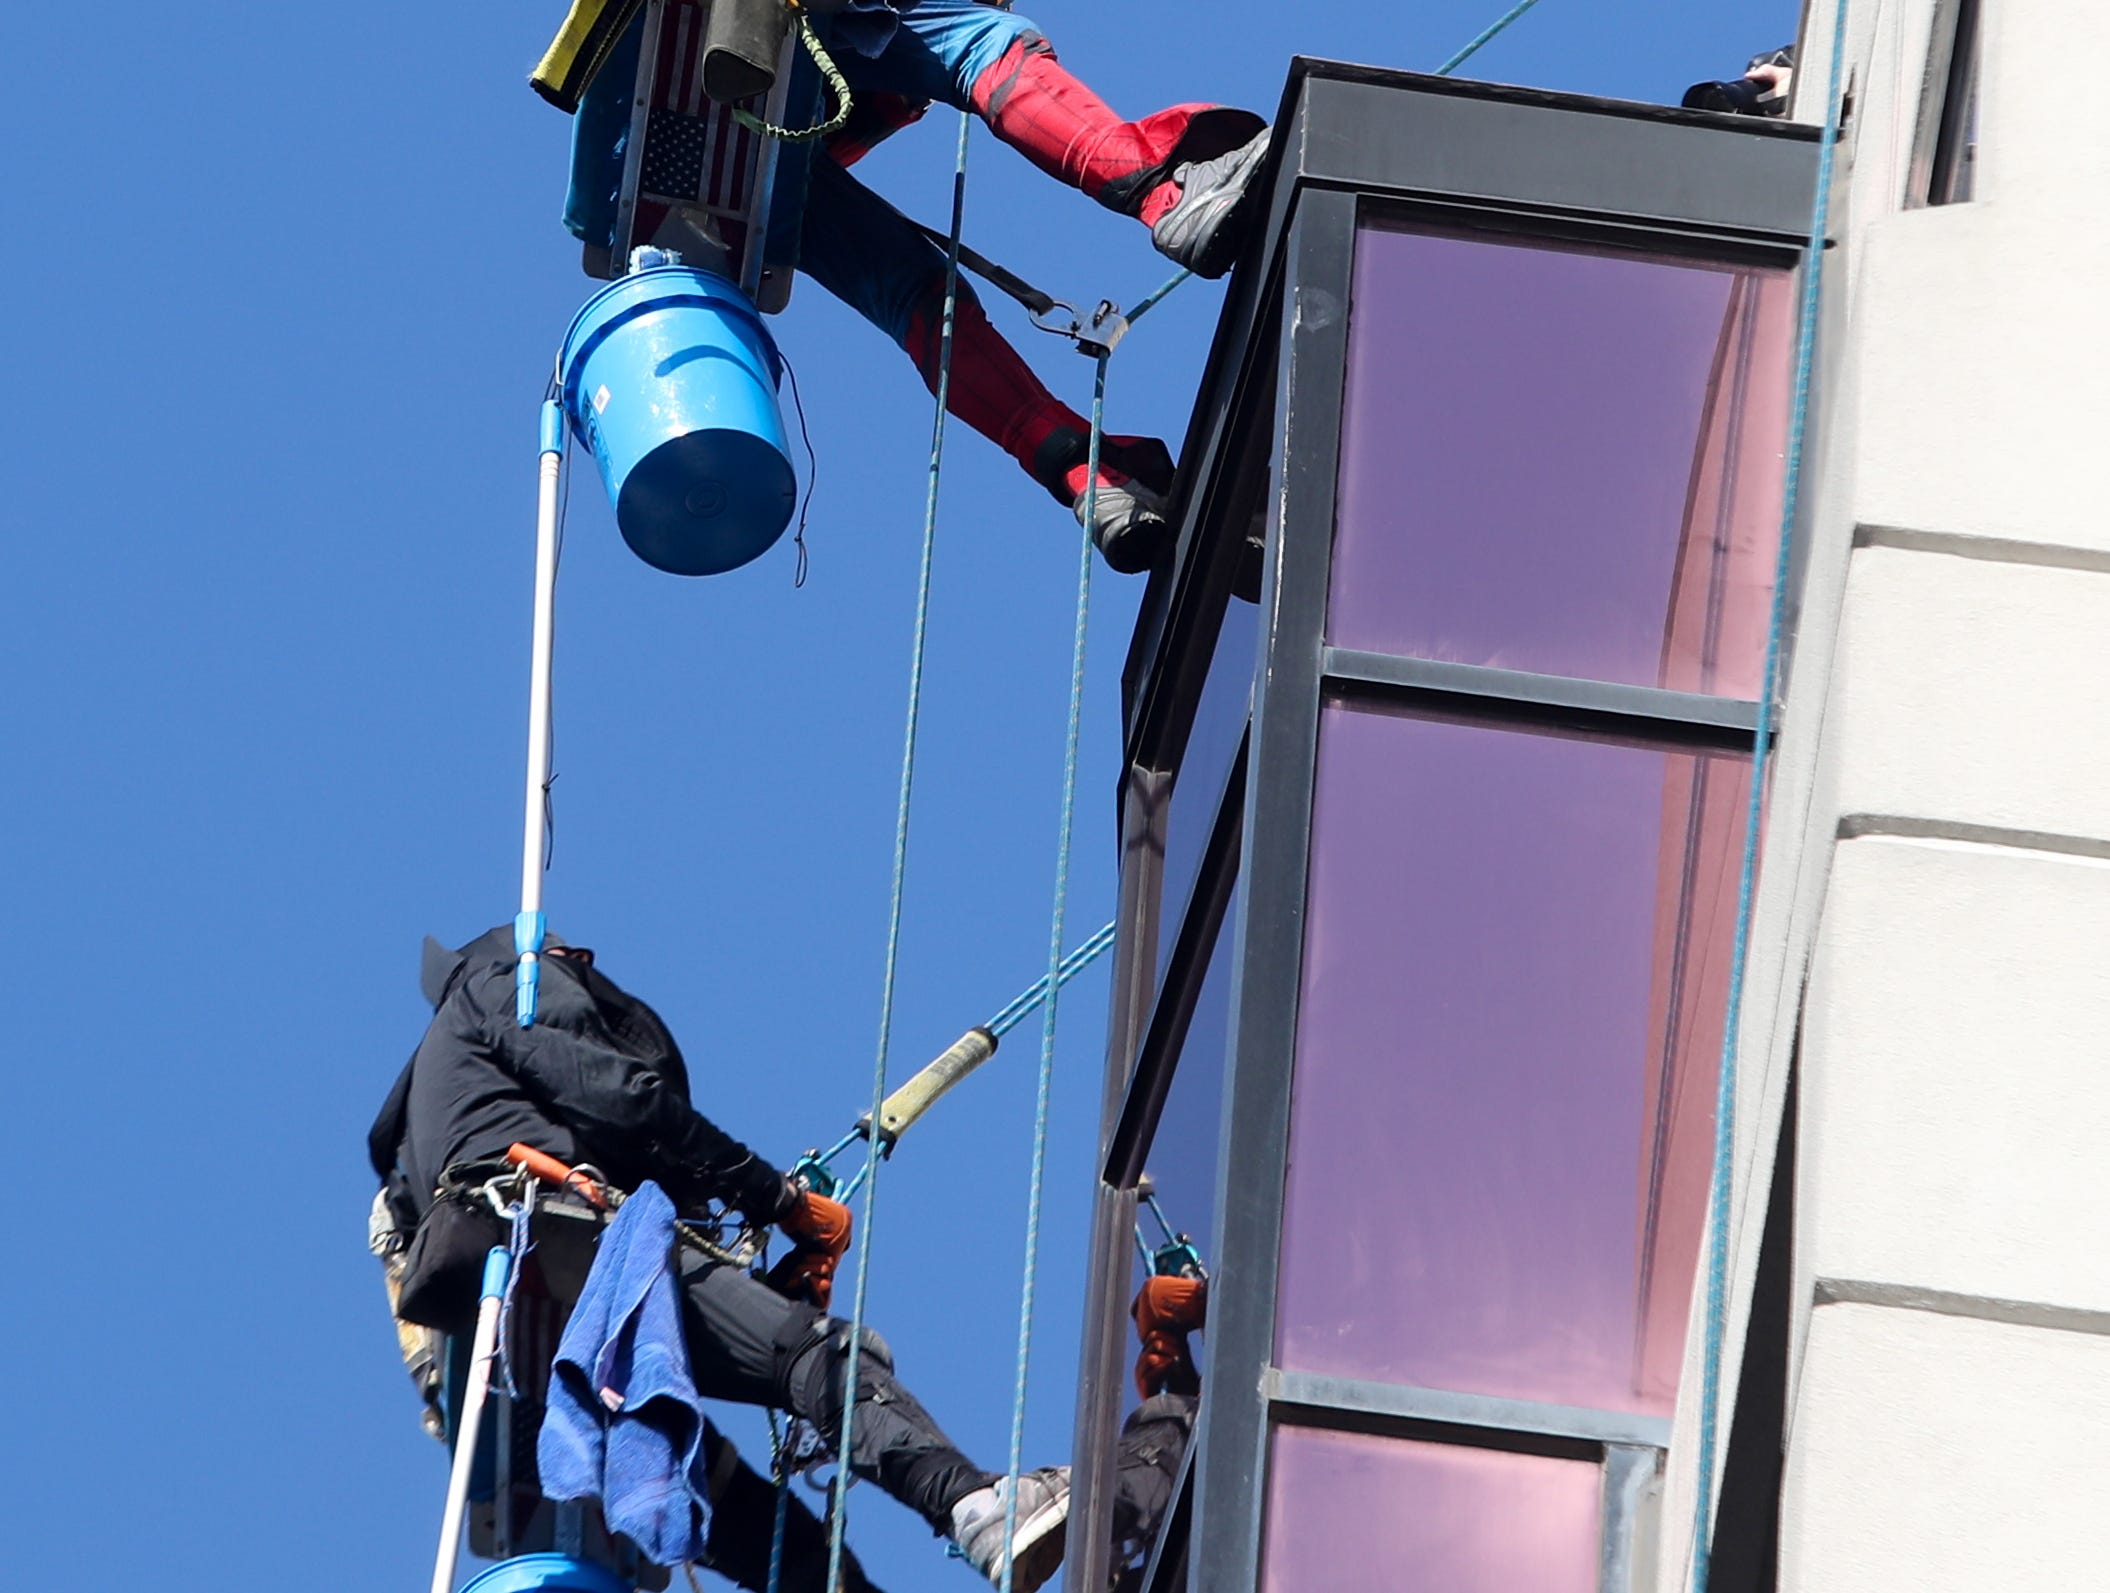 Pro Clean International cleans the windows at Norton Children's Hospital on Thursday morning dressed as Superheroes.  Lonnie Hart is dressed up as Spider-Man and William Hart is dressed up as Batman.  Feb. 21, 2019